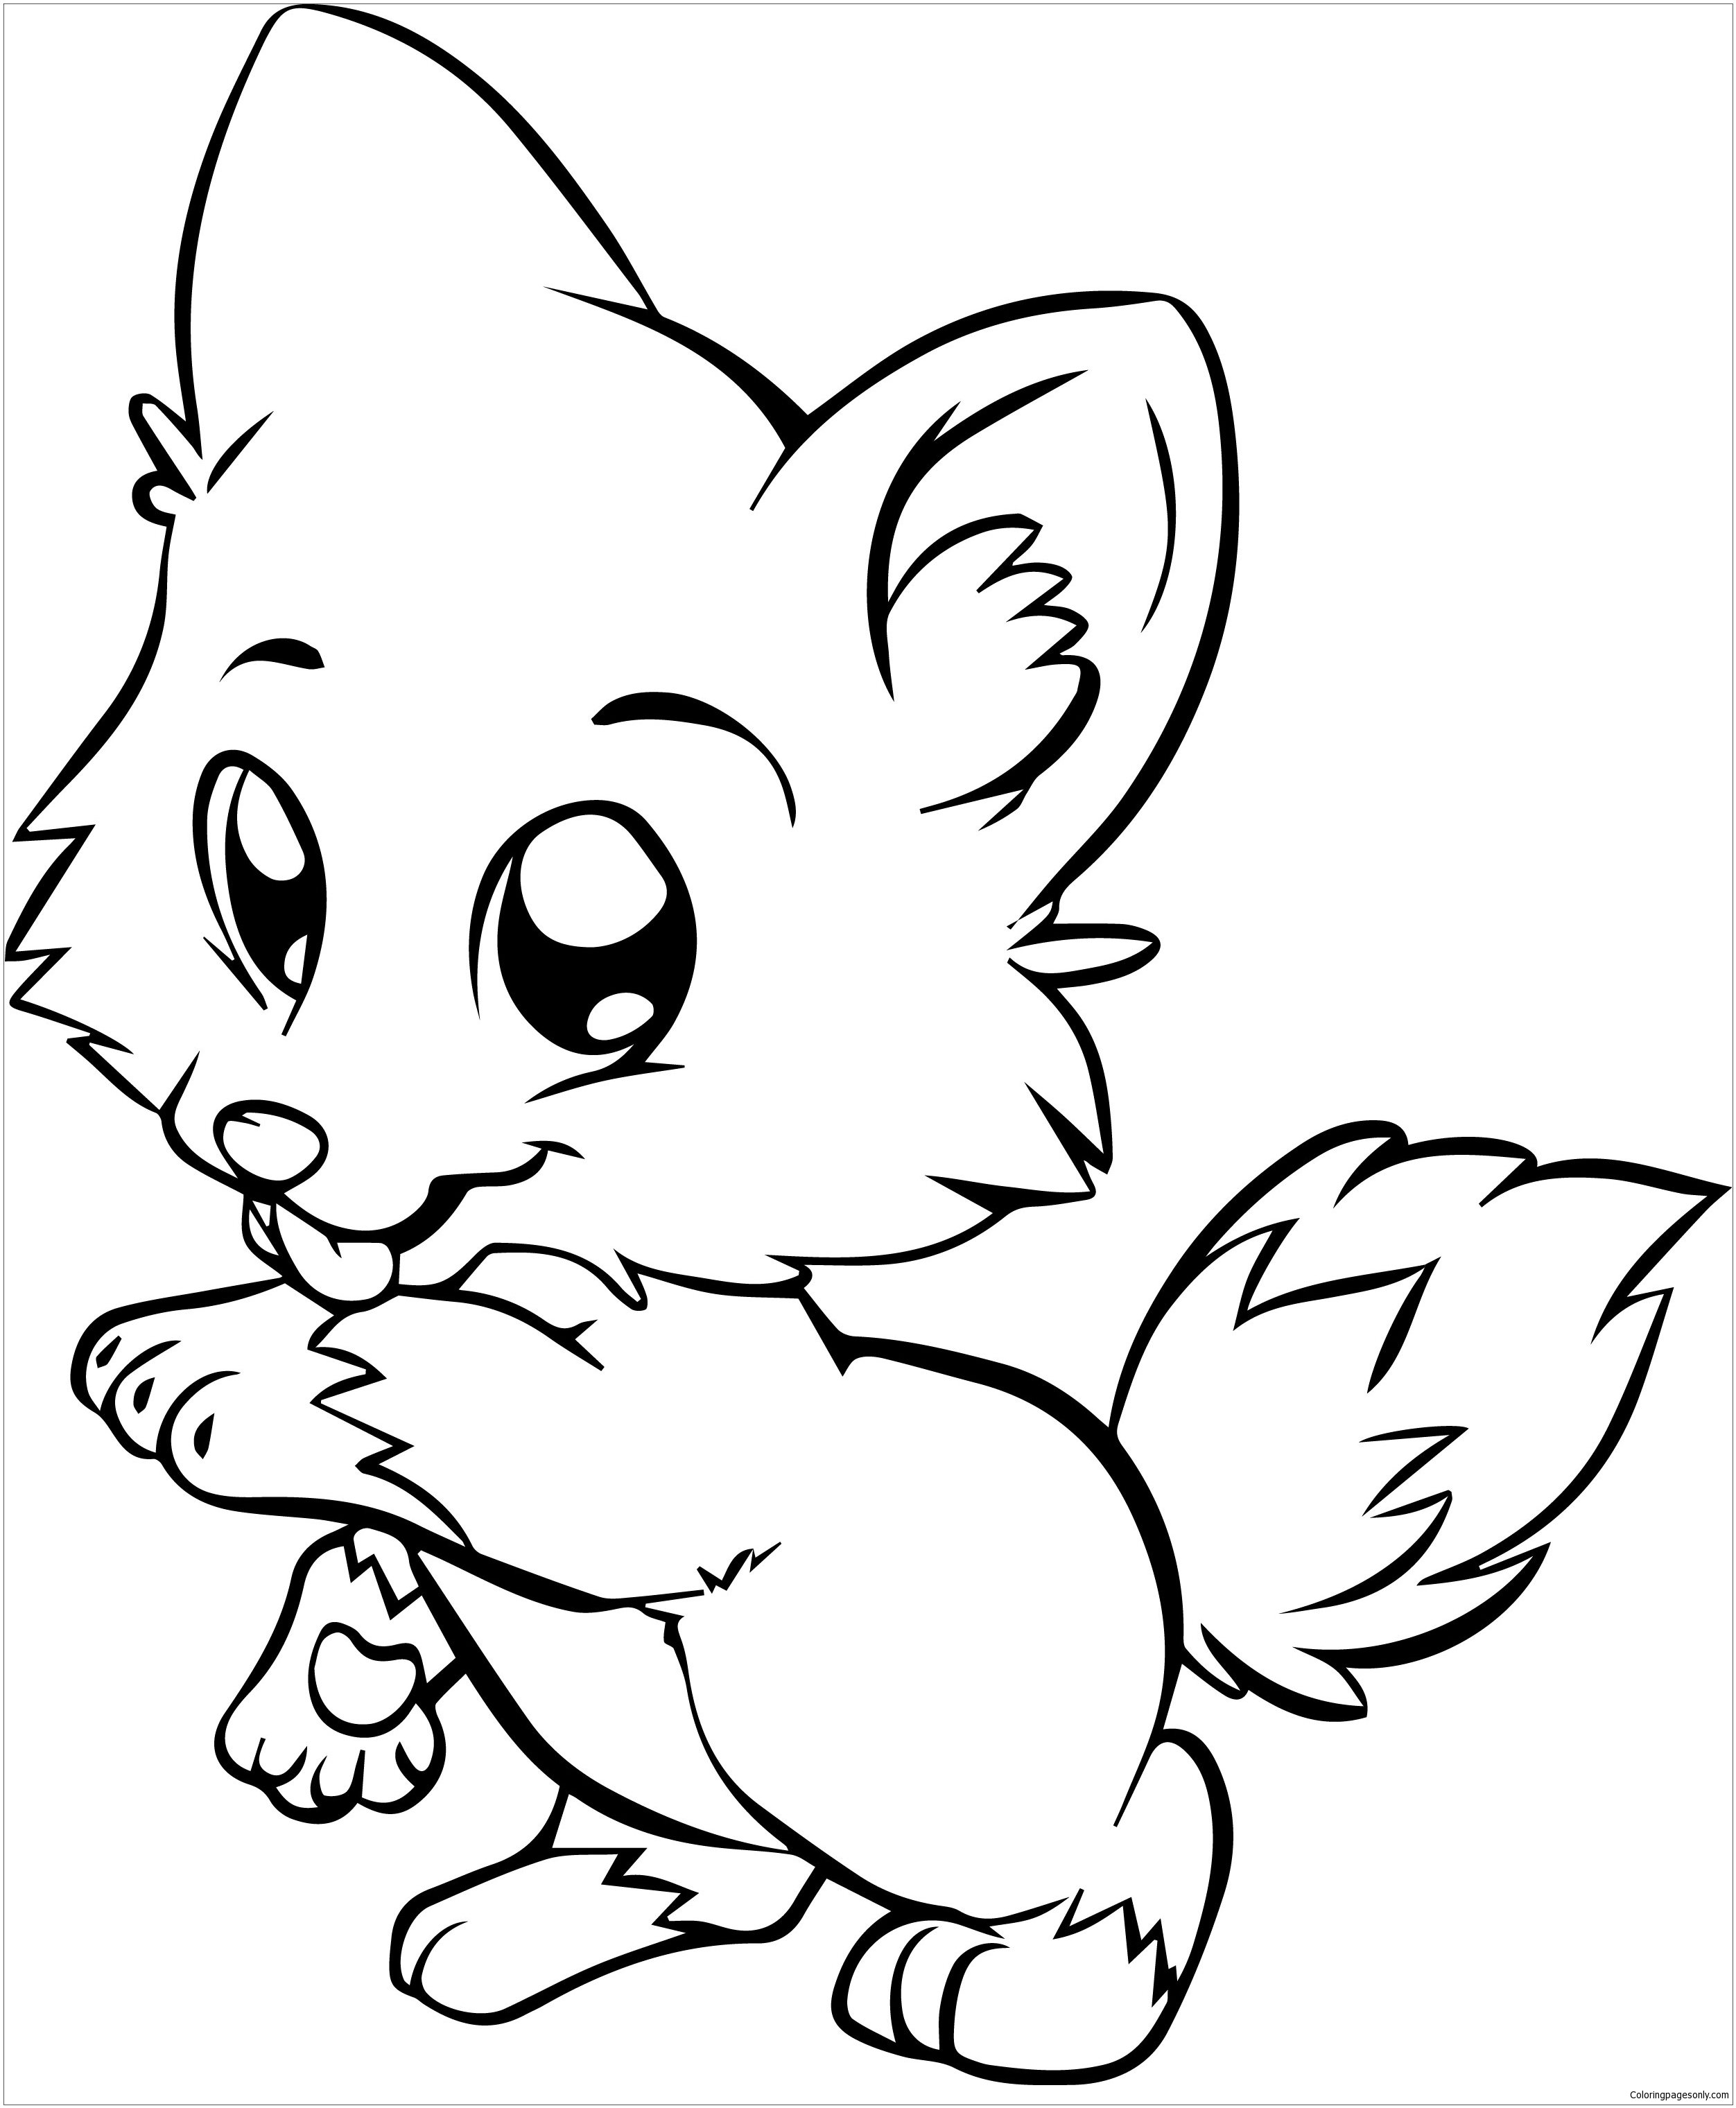 coloring sheet dog dogs 101 coloring pages download and print for free dog sheet coloring